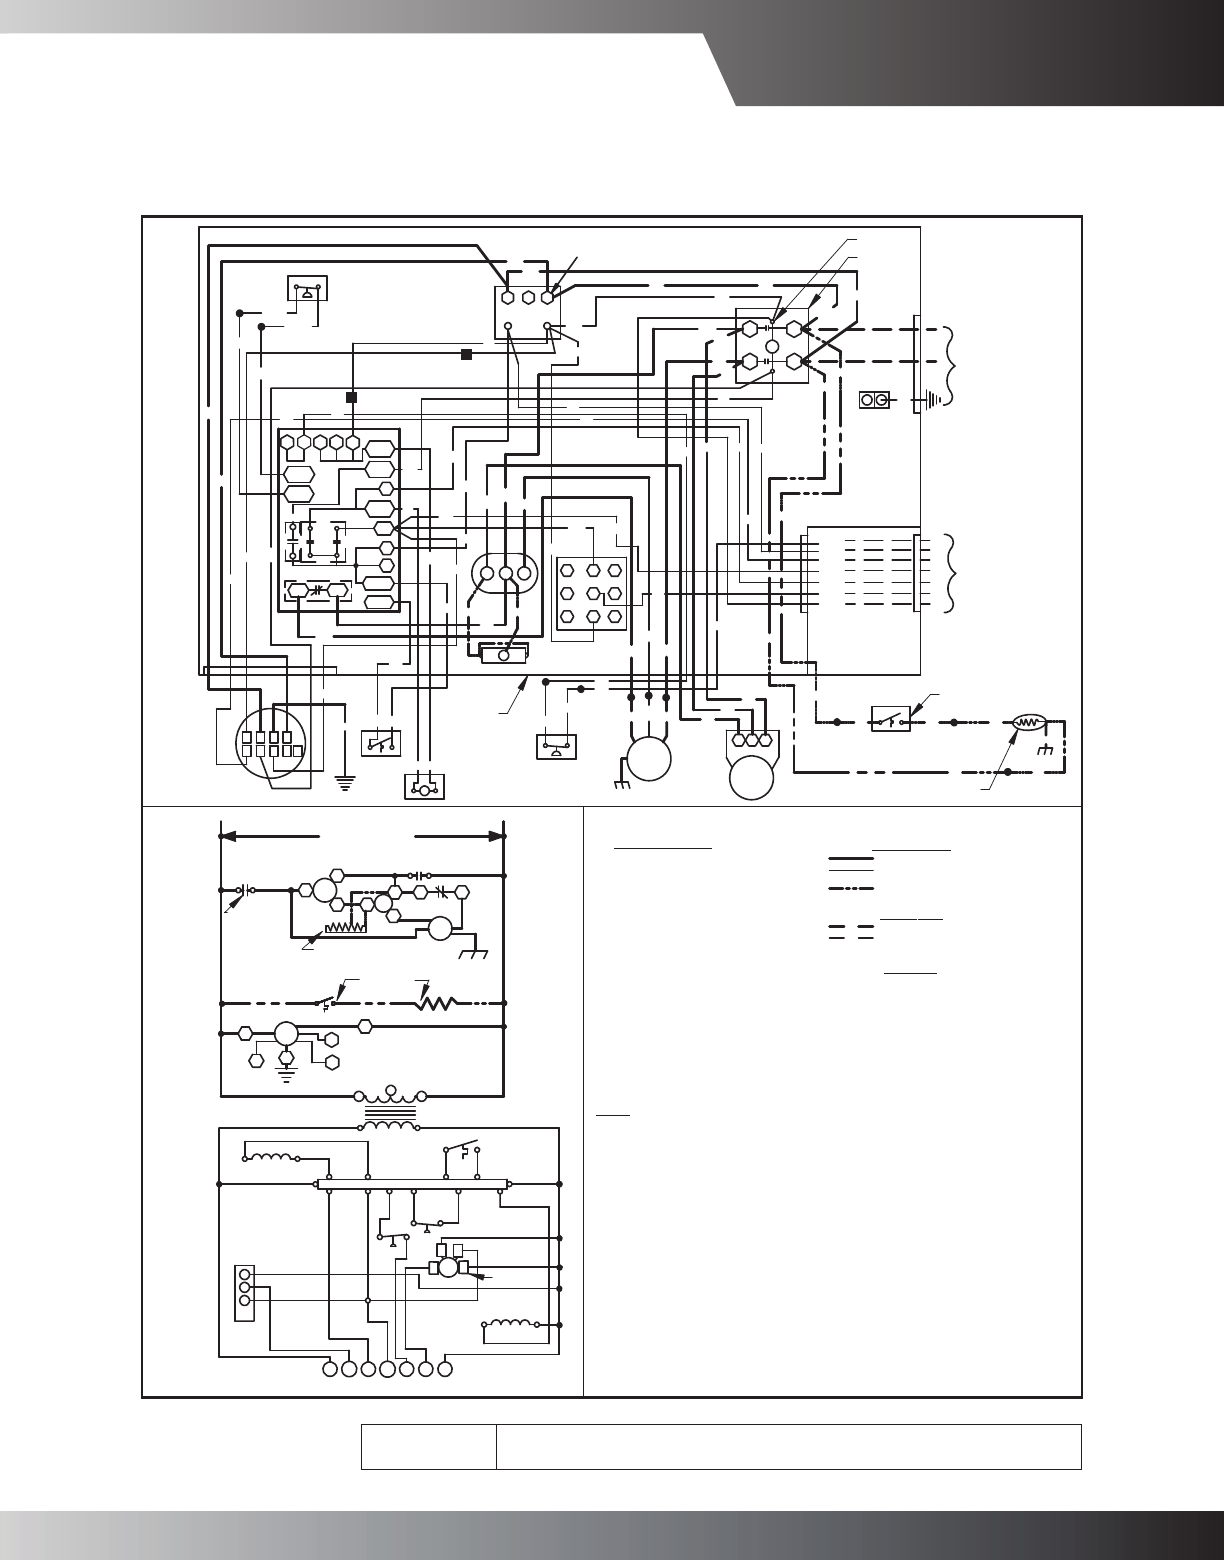 goodman furnace wiring diagram aruf486016 goodman gms8